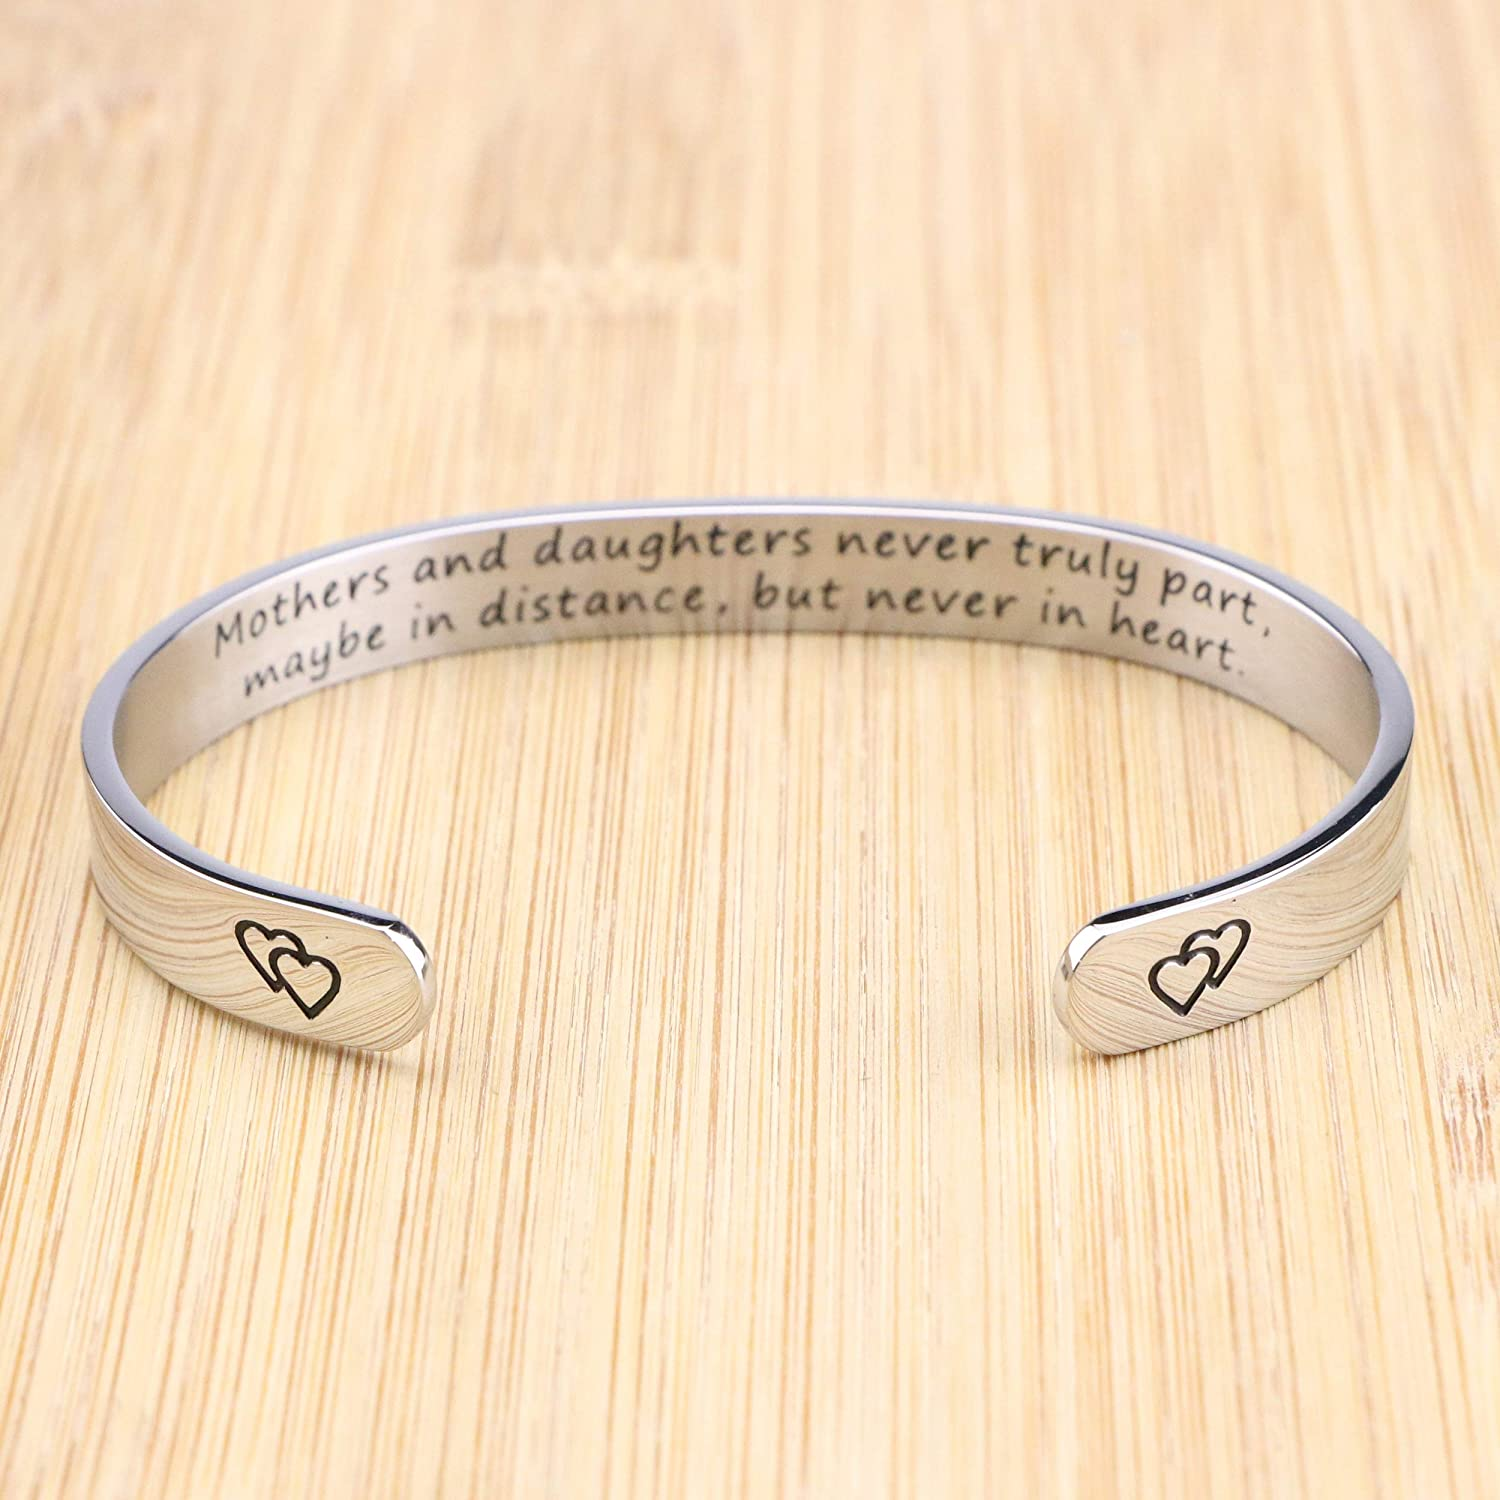 MEMGIFT Inspirational Bracelets for Women Encouragement Motivational Stainless Steel Cuff Bangle Christmas Birthday Gifts for Her Engraved Secret Message Mantra Jewelry